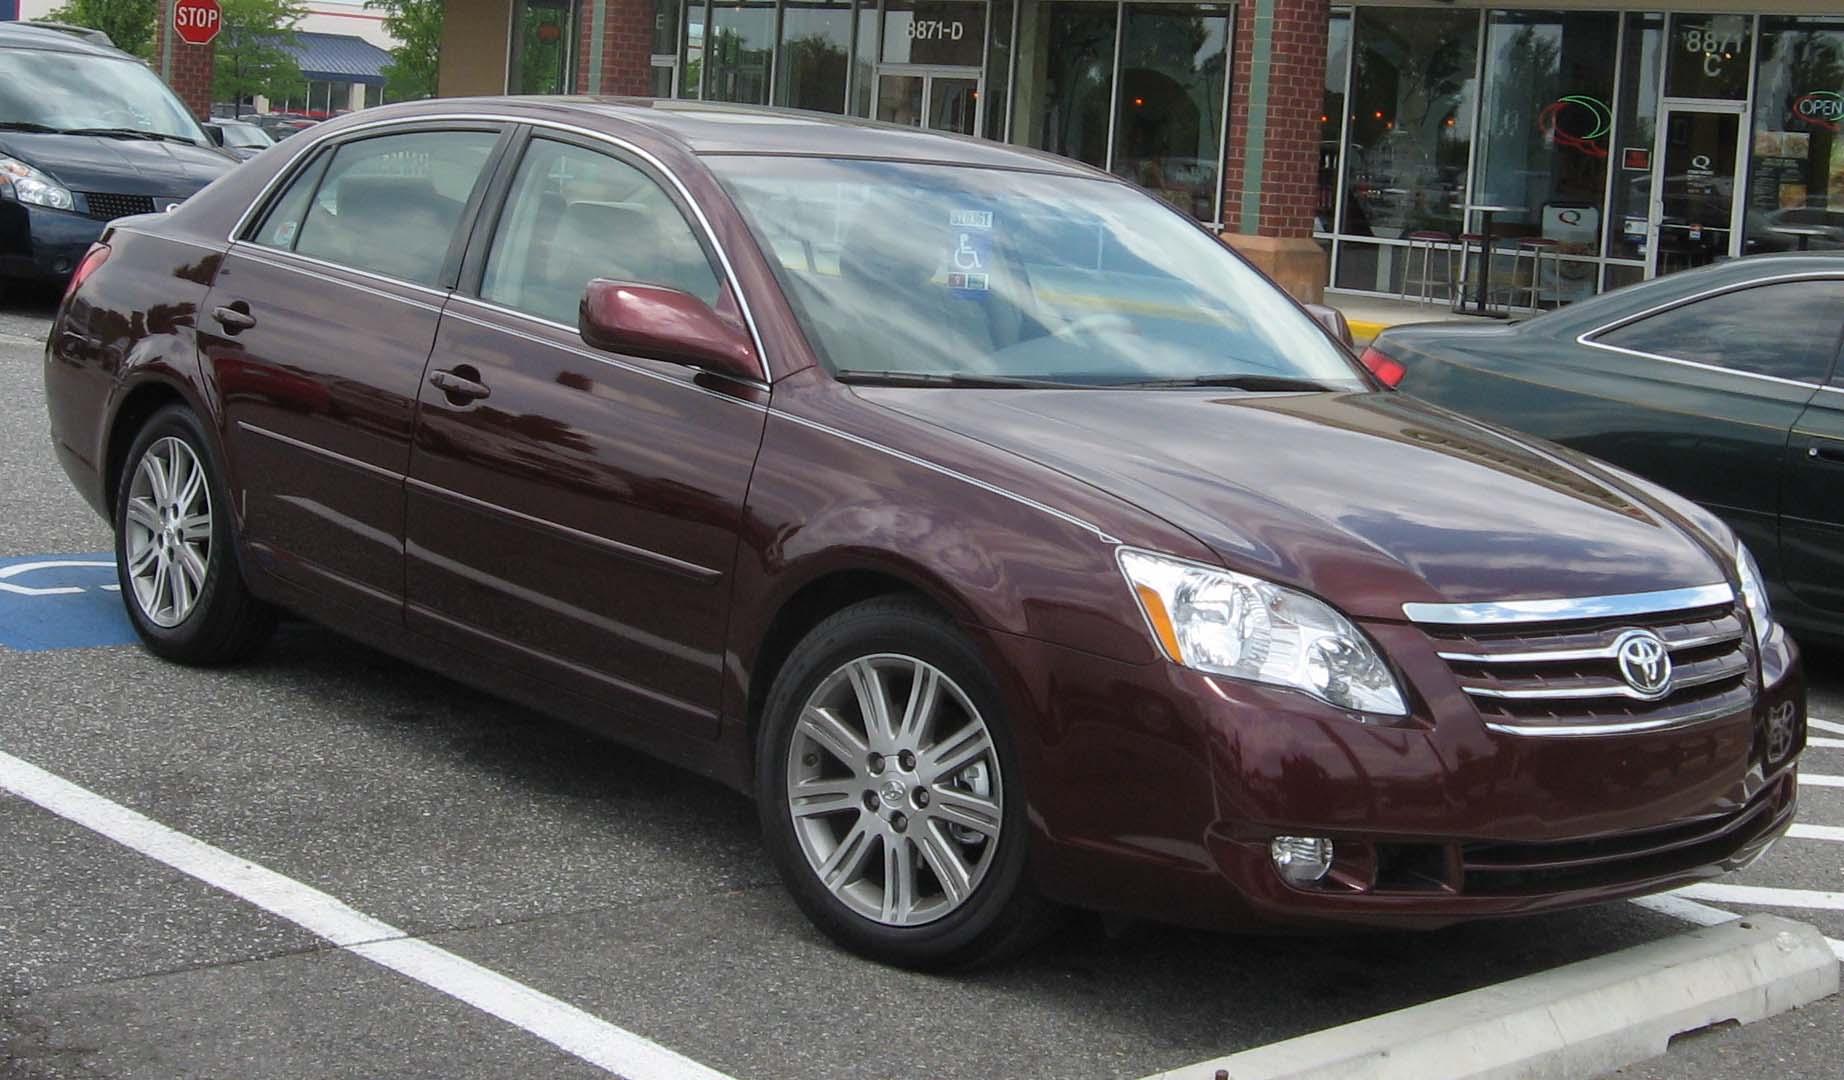 File:2005-2007 Toyota Avalon.jpg - Wikimedia Commons